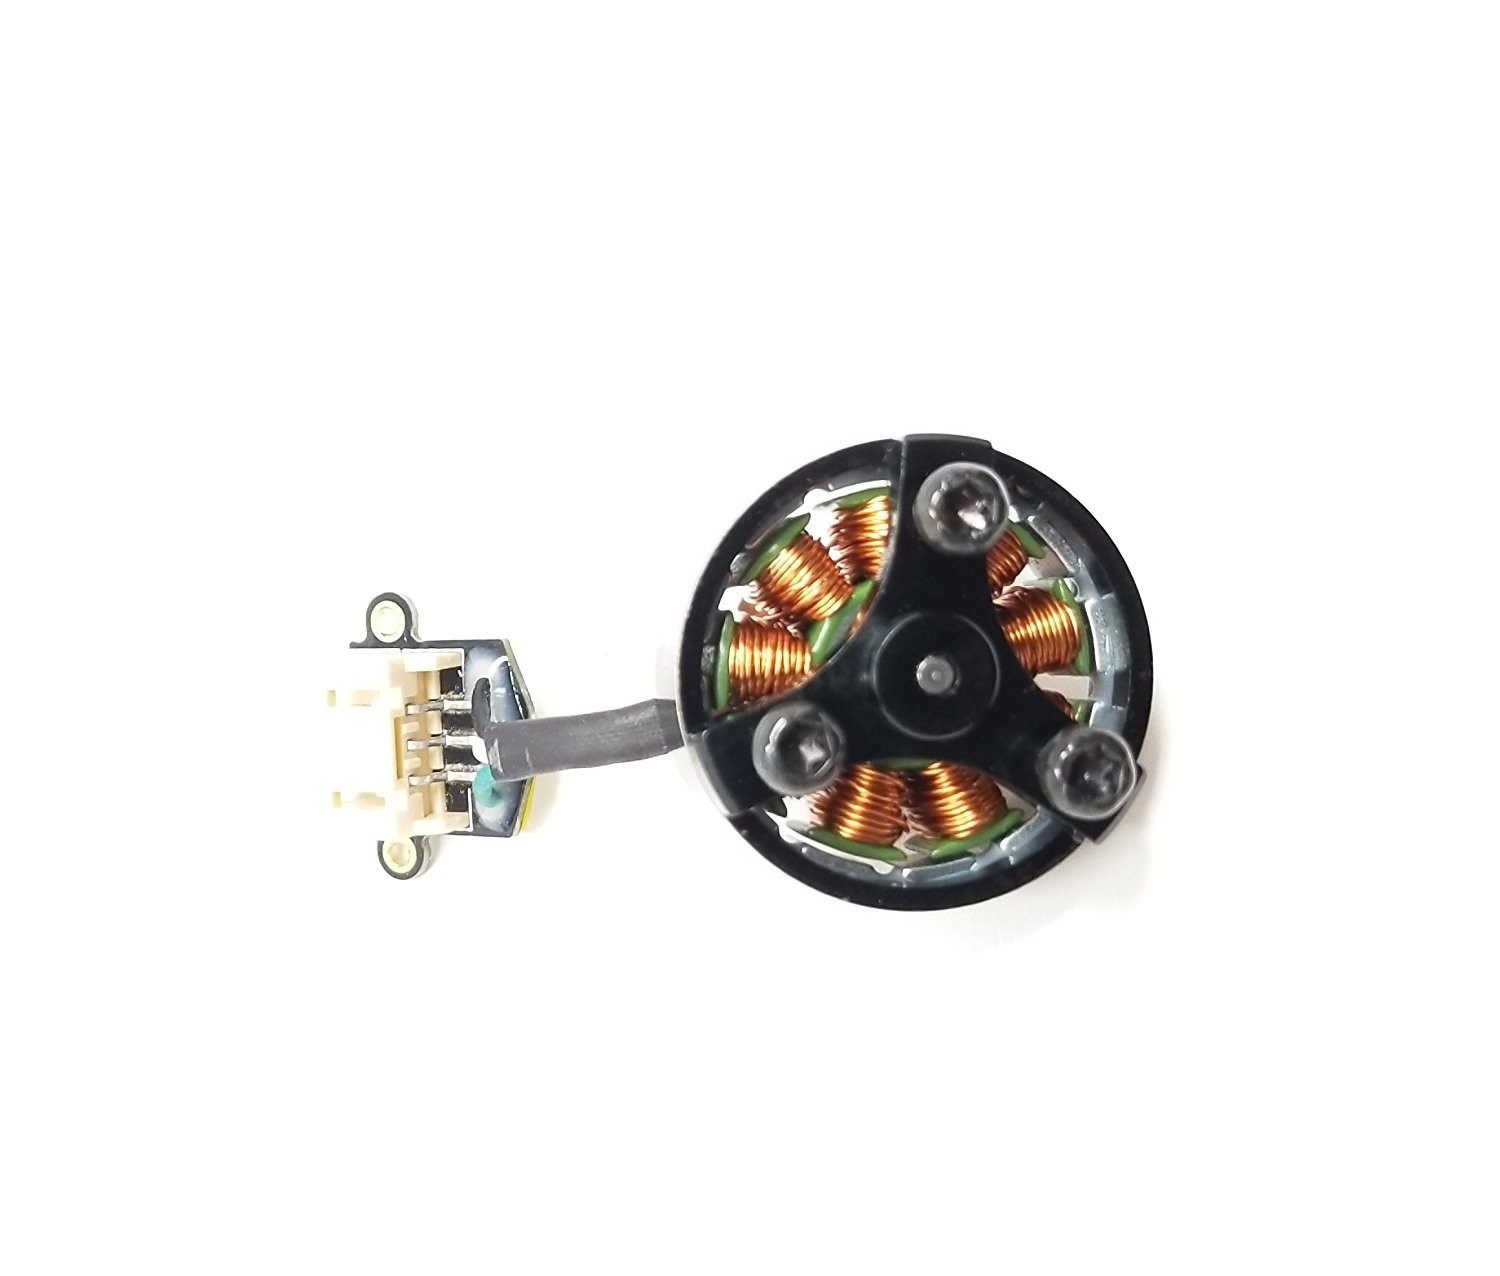 Best Parrot Bebop 2 Drone Oem Motor Sale Online Shopping Diagram Page A This Part Is Compatible With Only The Not Original